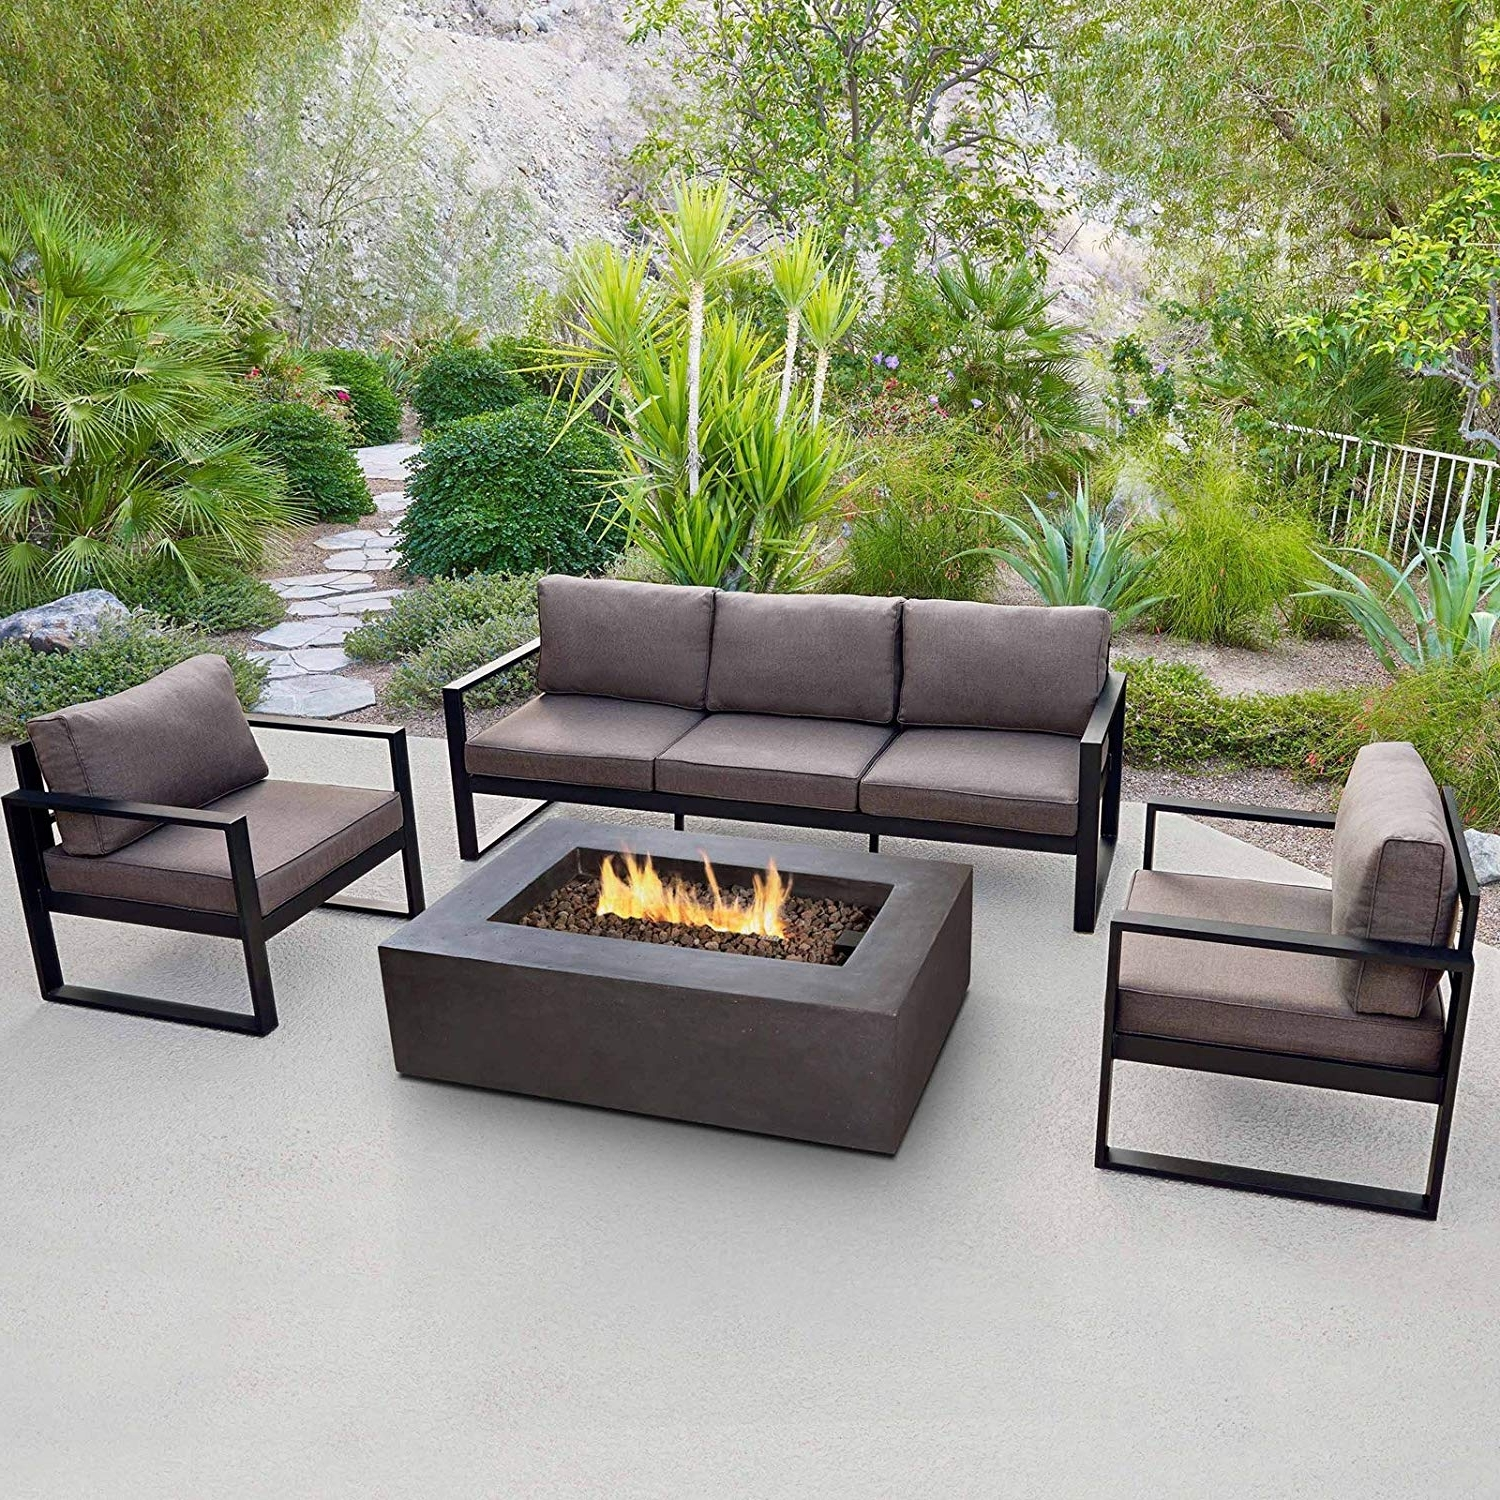 Latest Wayfair Outdoor Patio Conversation Sets In Real Flame 9621 Baltic 3 Seat Sofa (View 4 of 15)